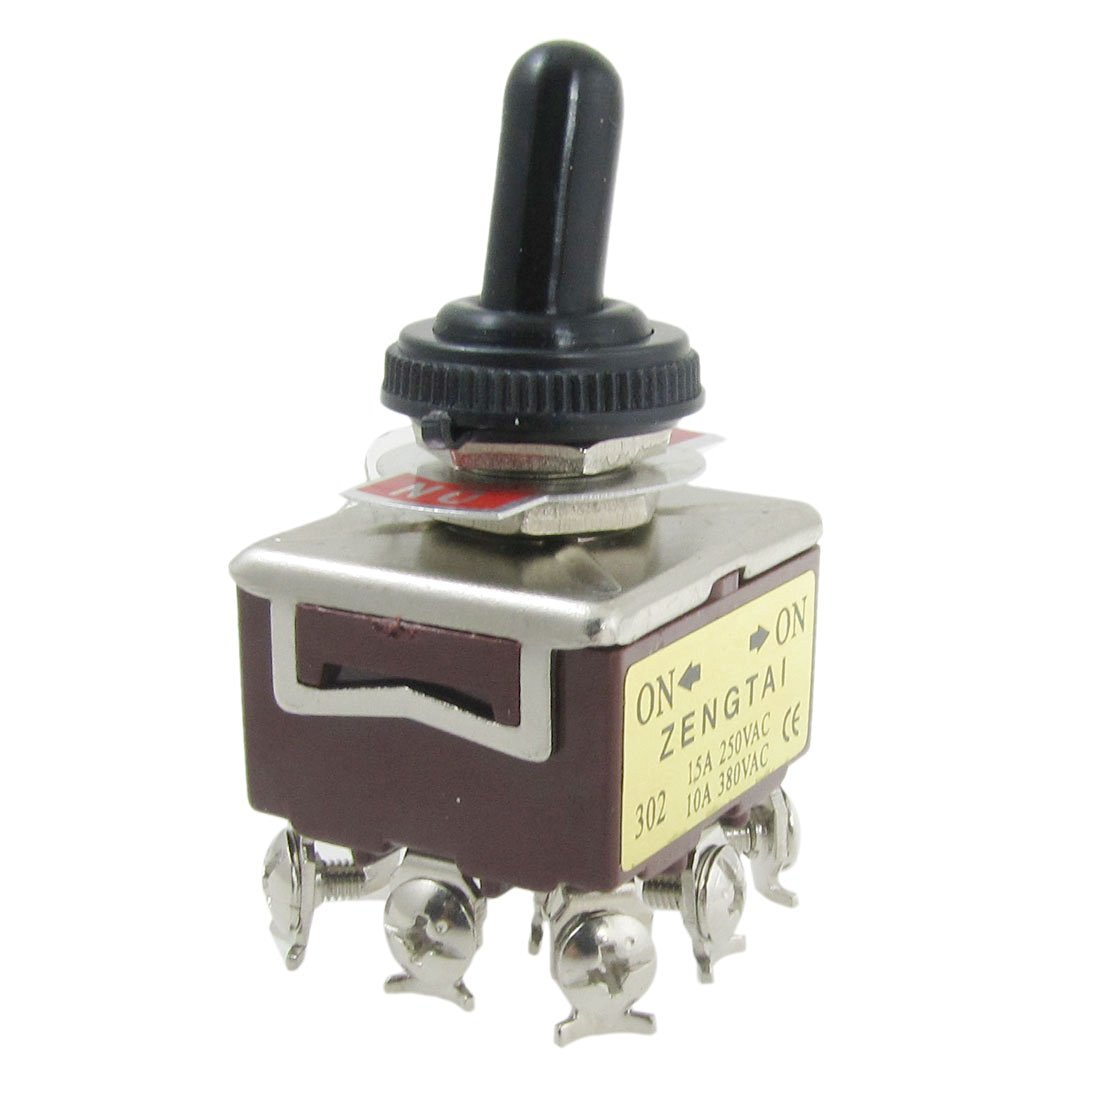 uxcell® AC 250V 15A 380V 10A on/on 2 Position 3PDT Toggle Switch with Waterproof Cap